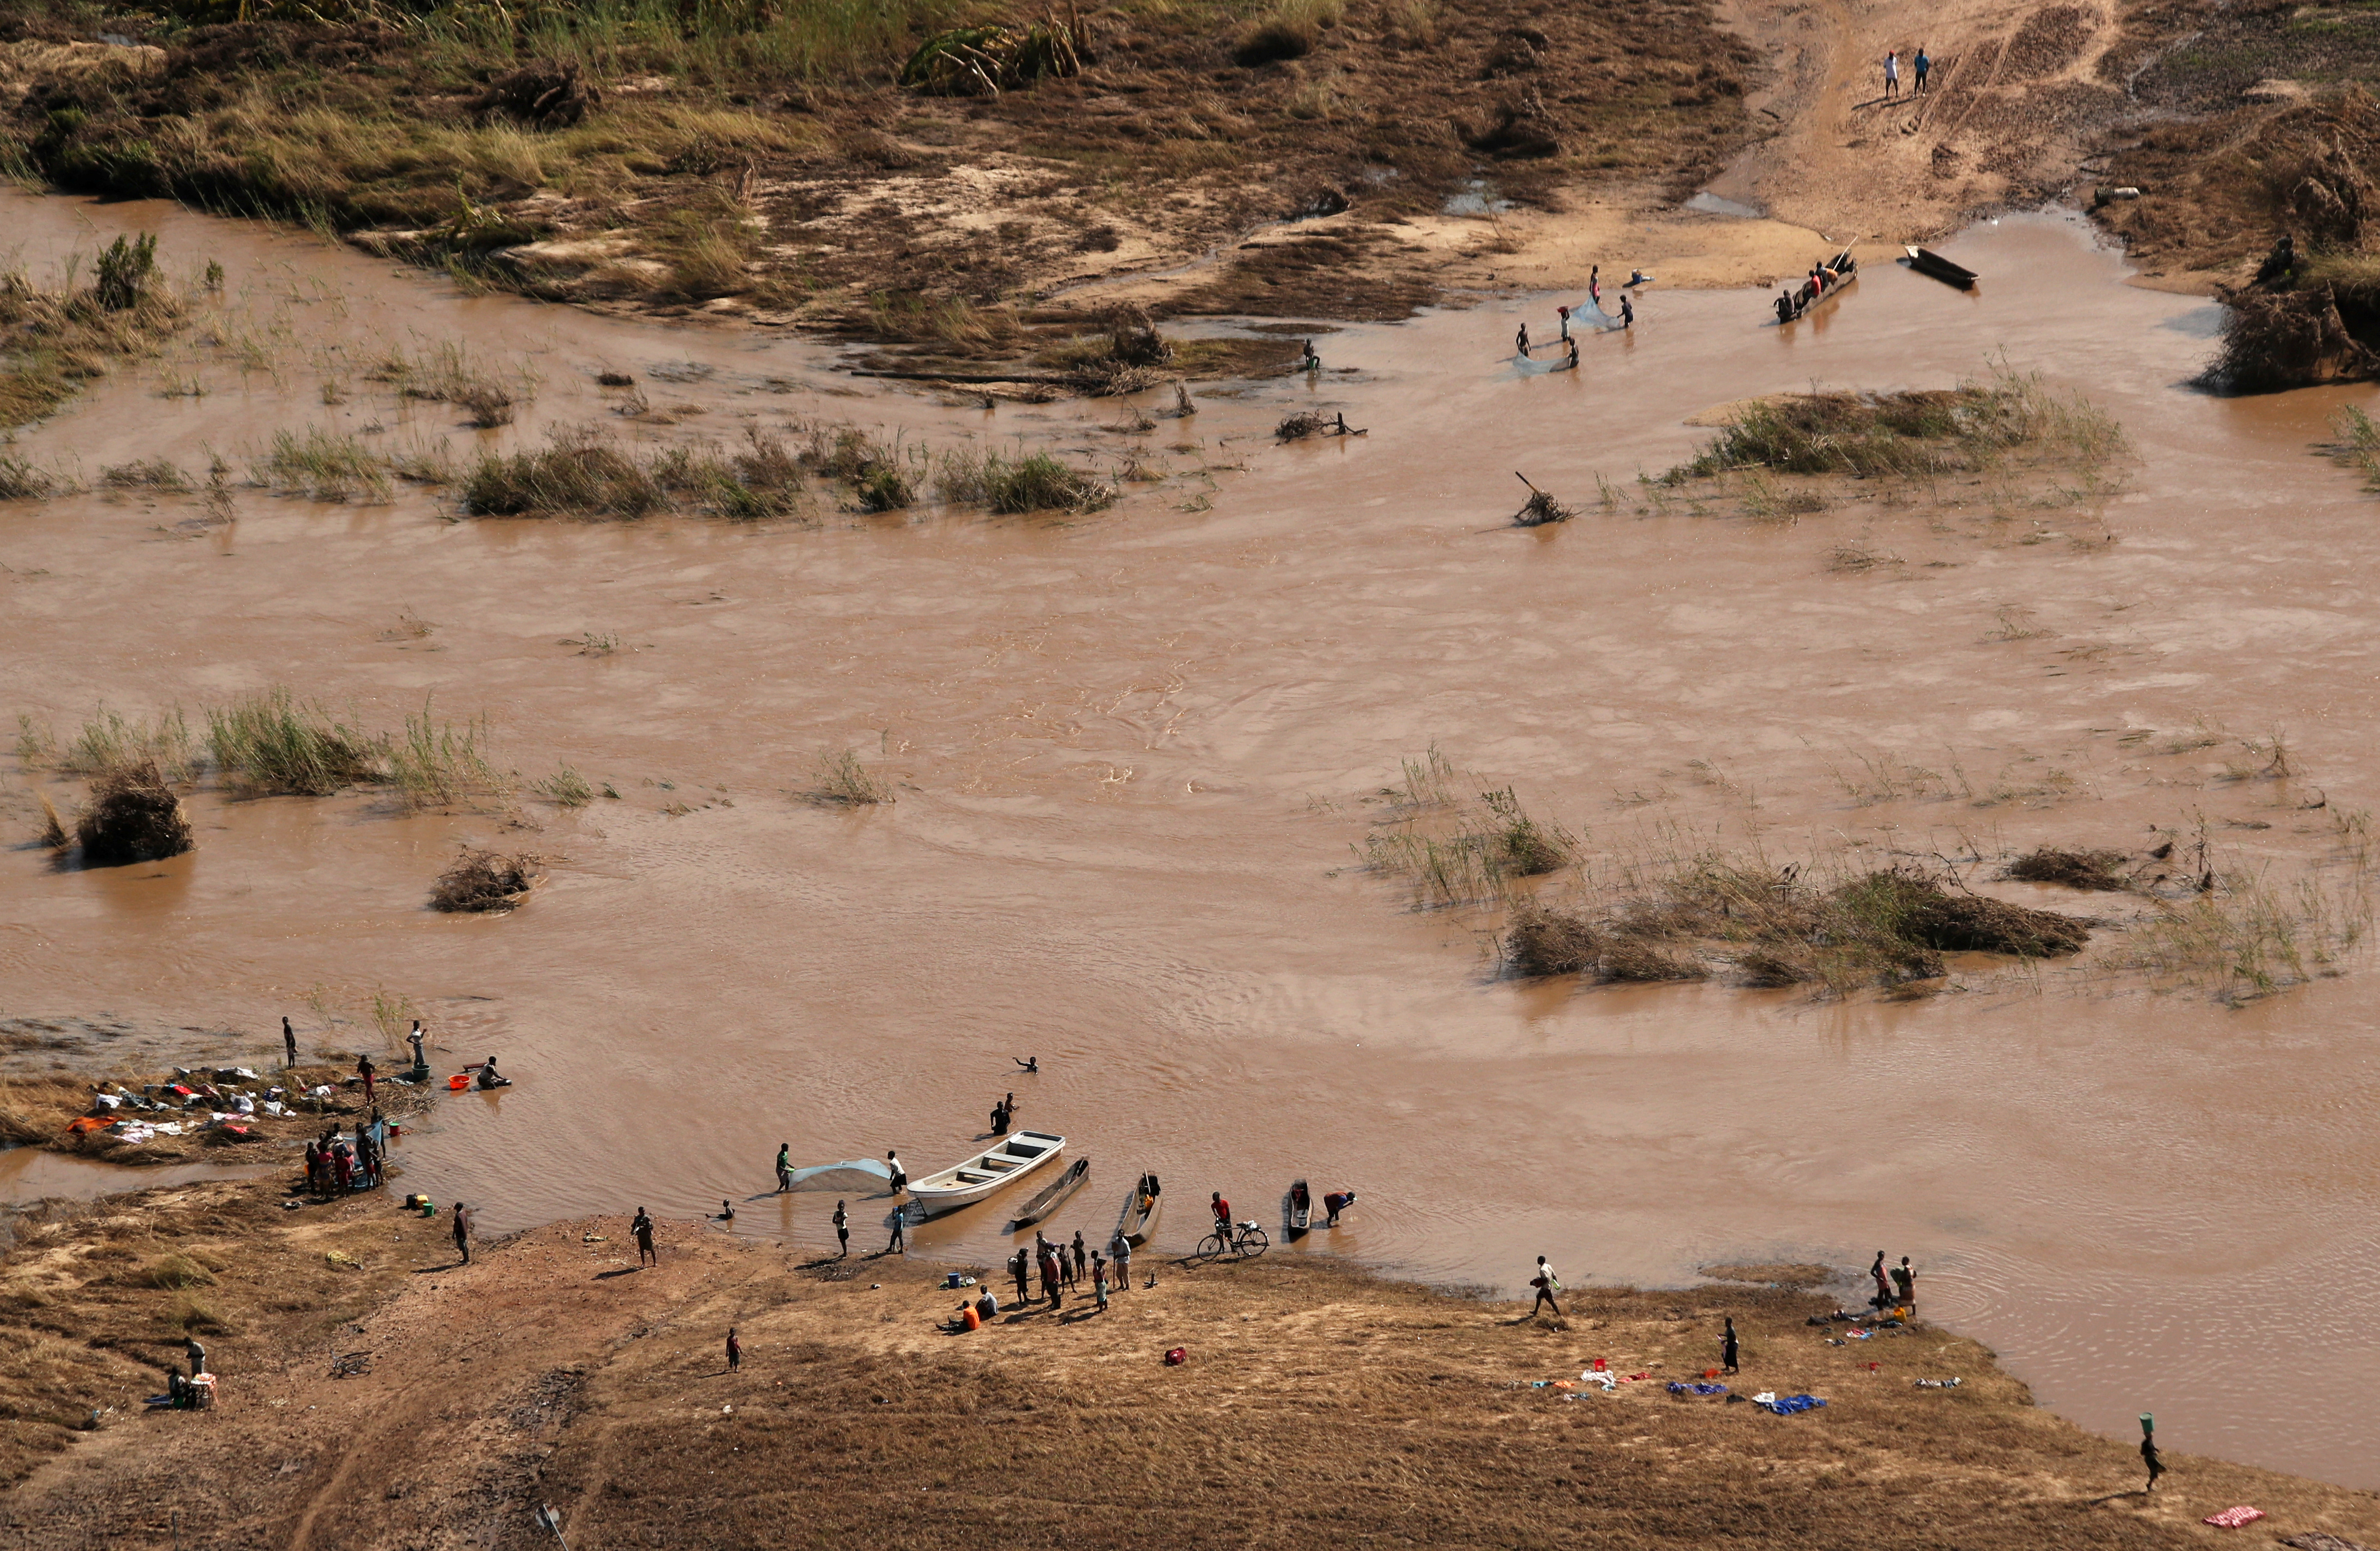 People stand on the banks where the bridge was washed away, in the aftermath of Cyclone Idai, near the village of John Segredo, Mozambique, March 24, 2019.